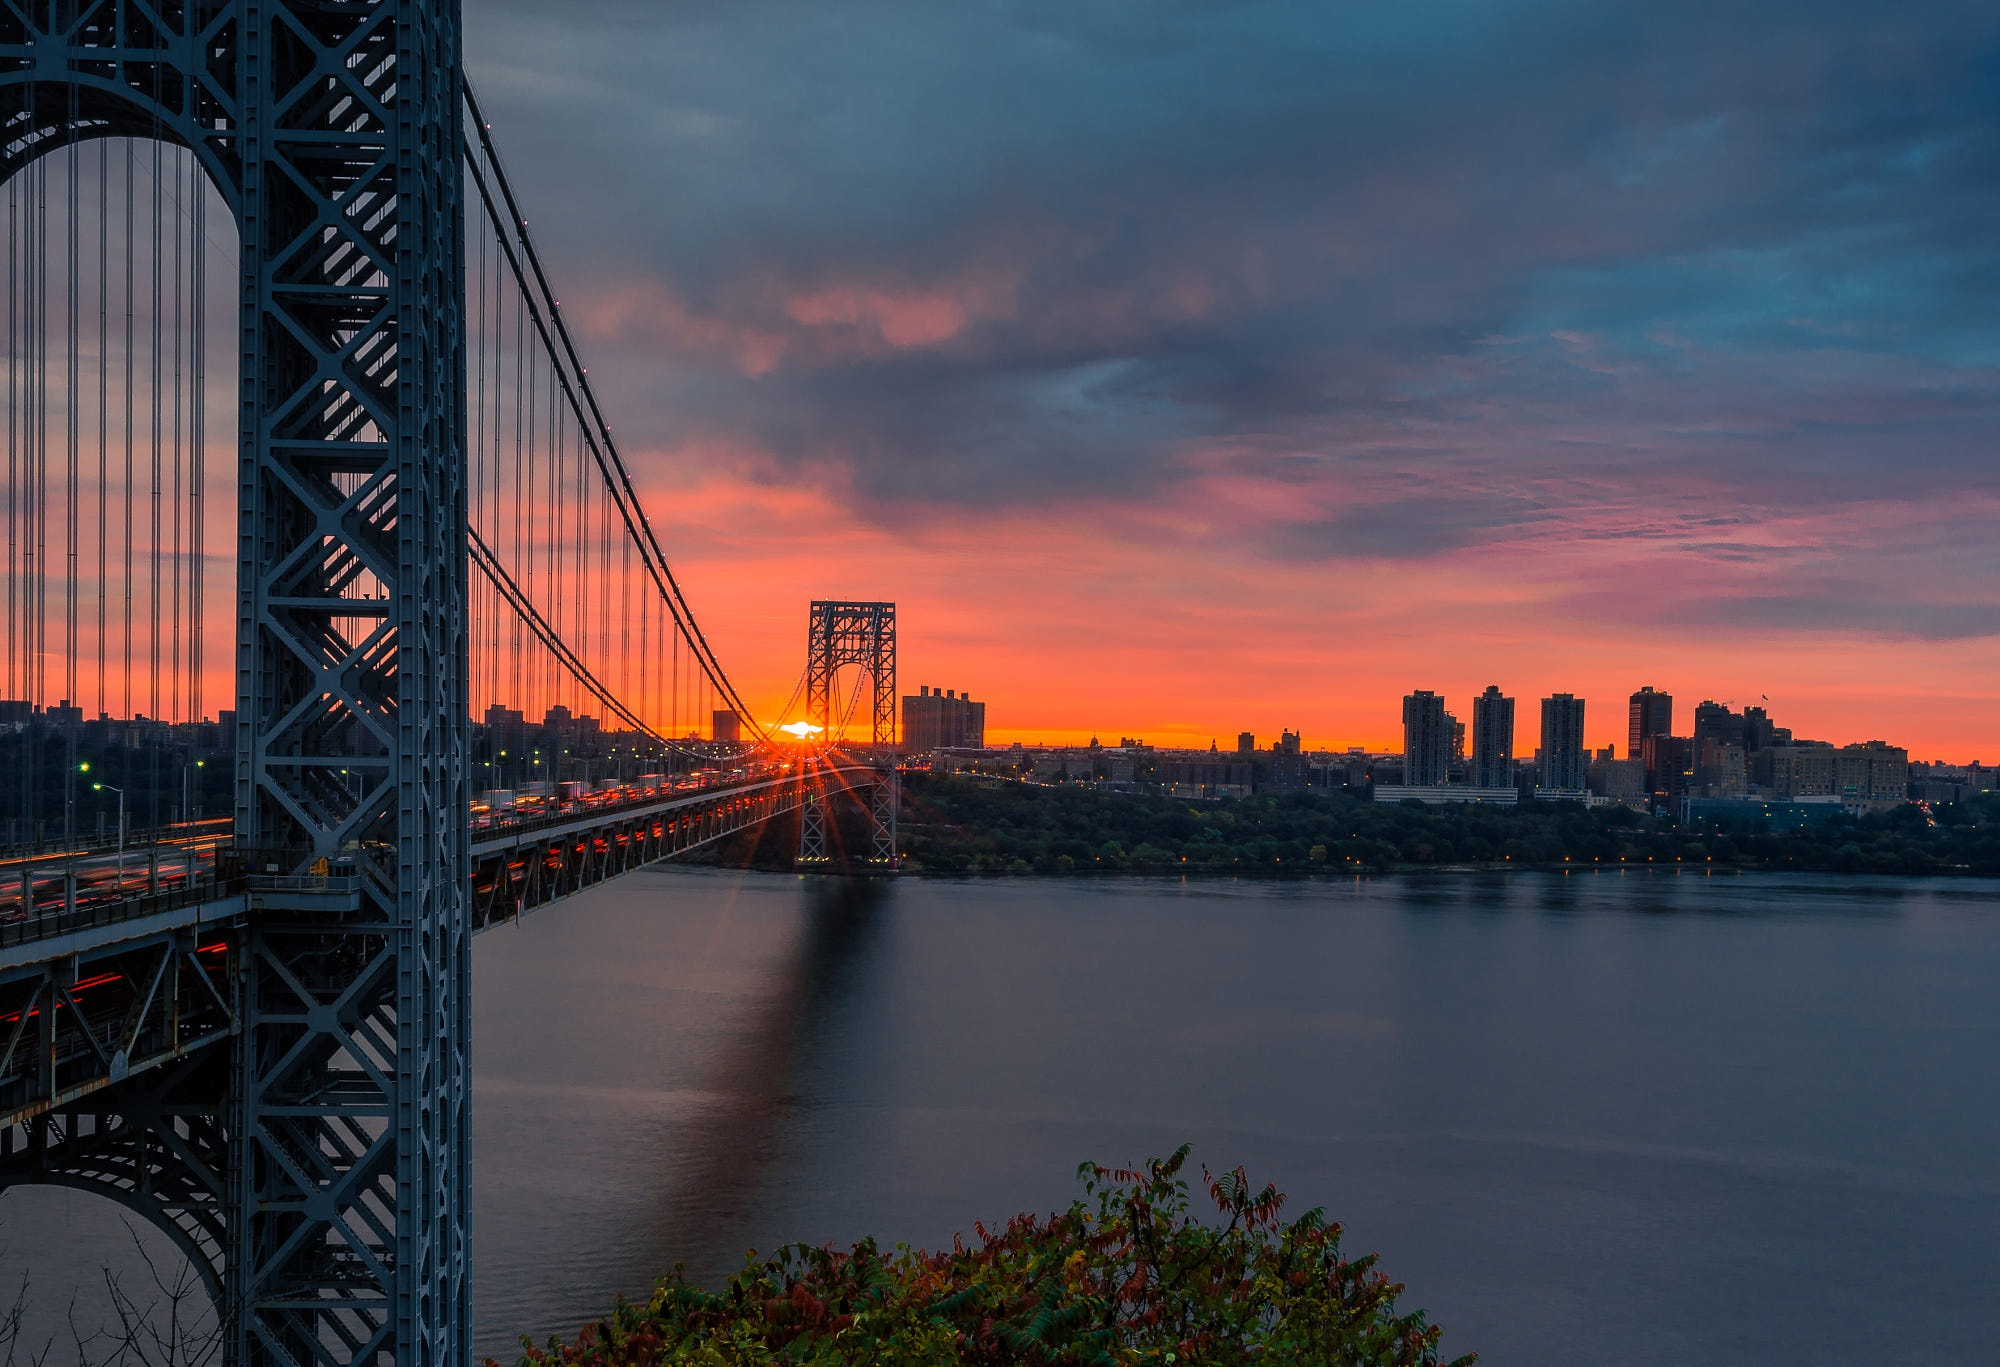 10 george washington bridge hd wallpapers | background images